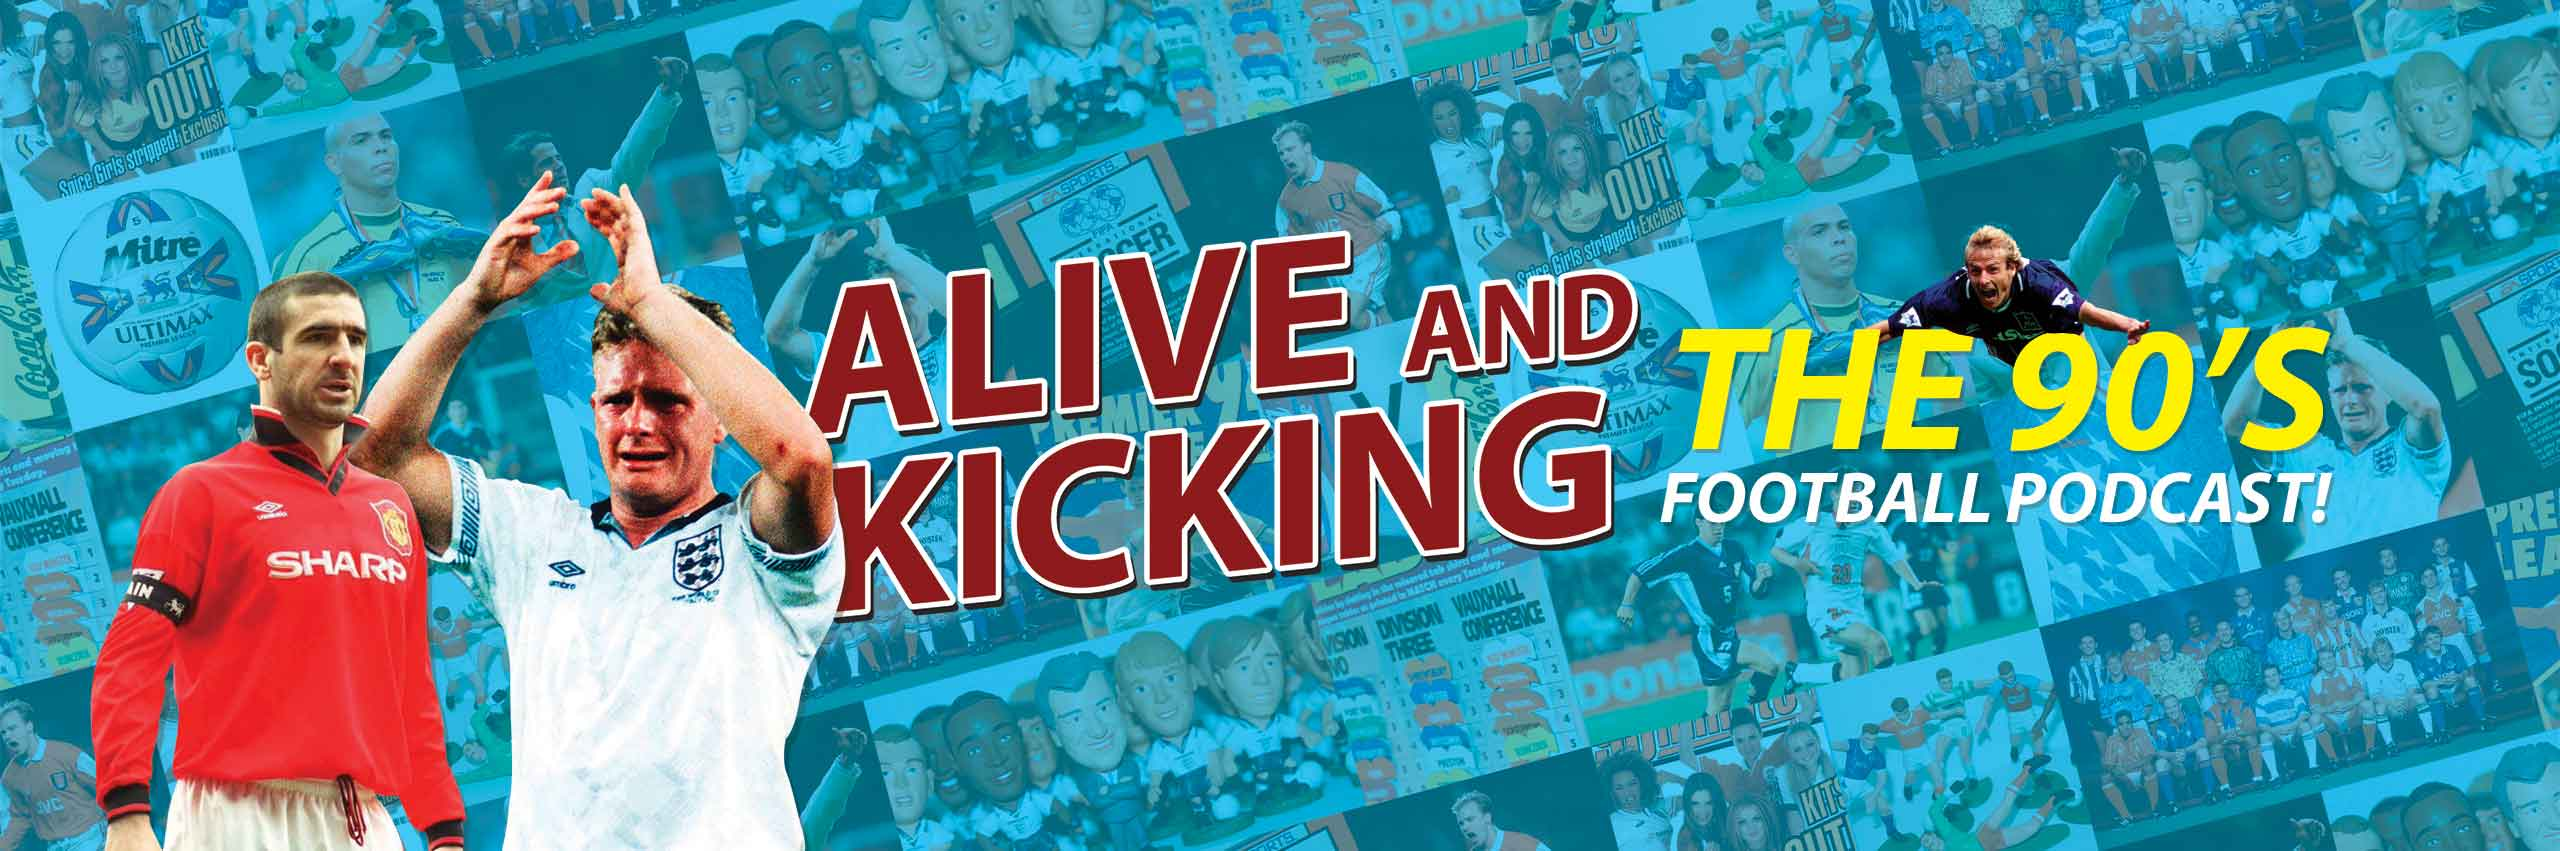 Alive and Kicking – The Ultimate Podcast of 90s Football Nostalgia